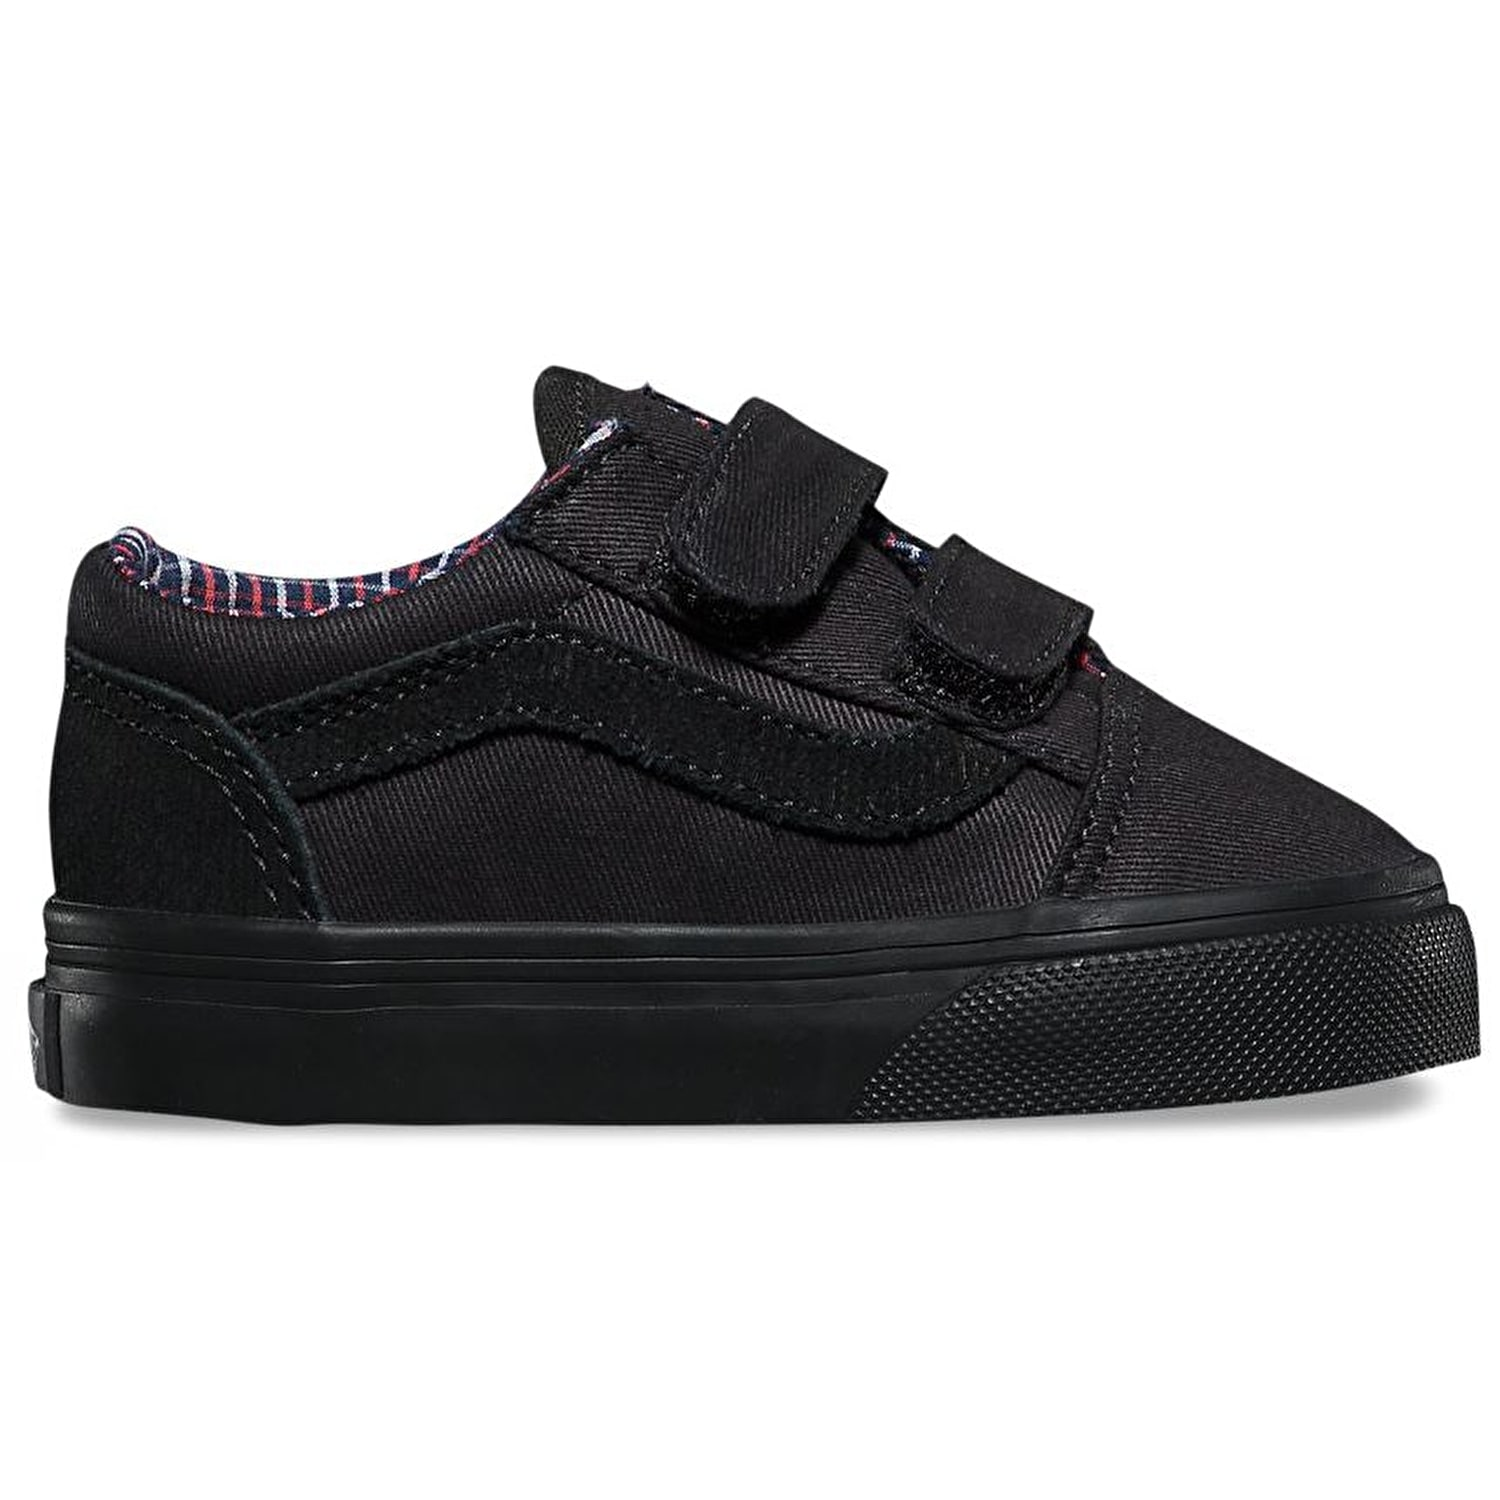 vans old skool v skateschuhe schnur kariert schwarz schwarz ebay. Black Bedroom Furniture Sets. Home Design Ideas